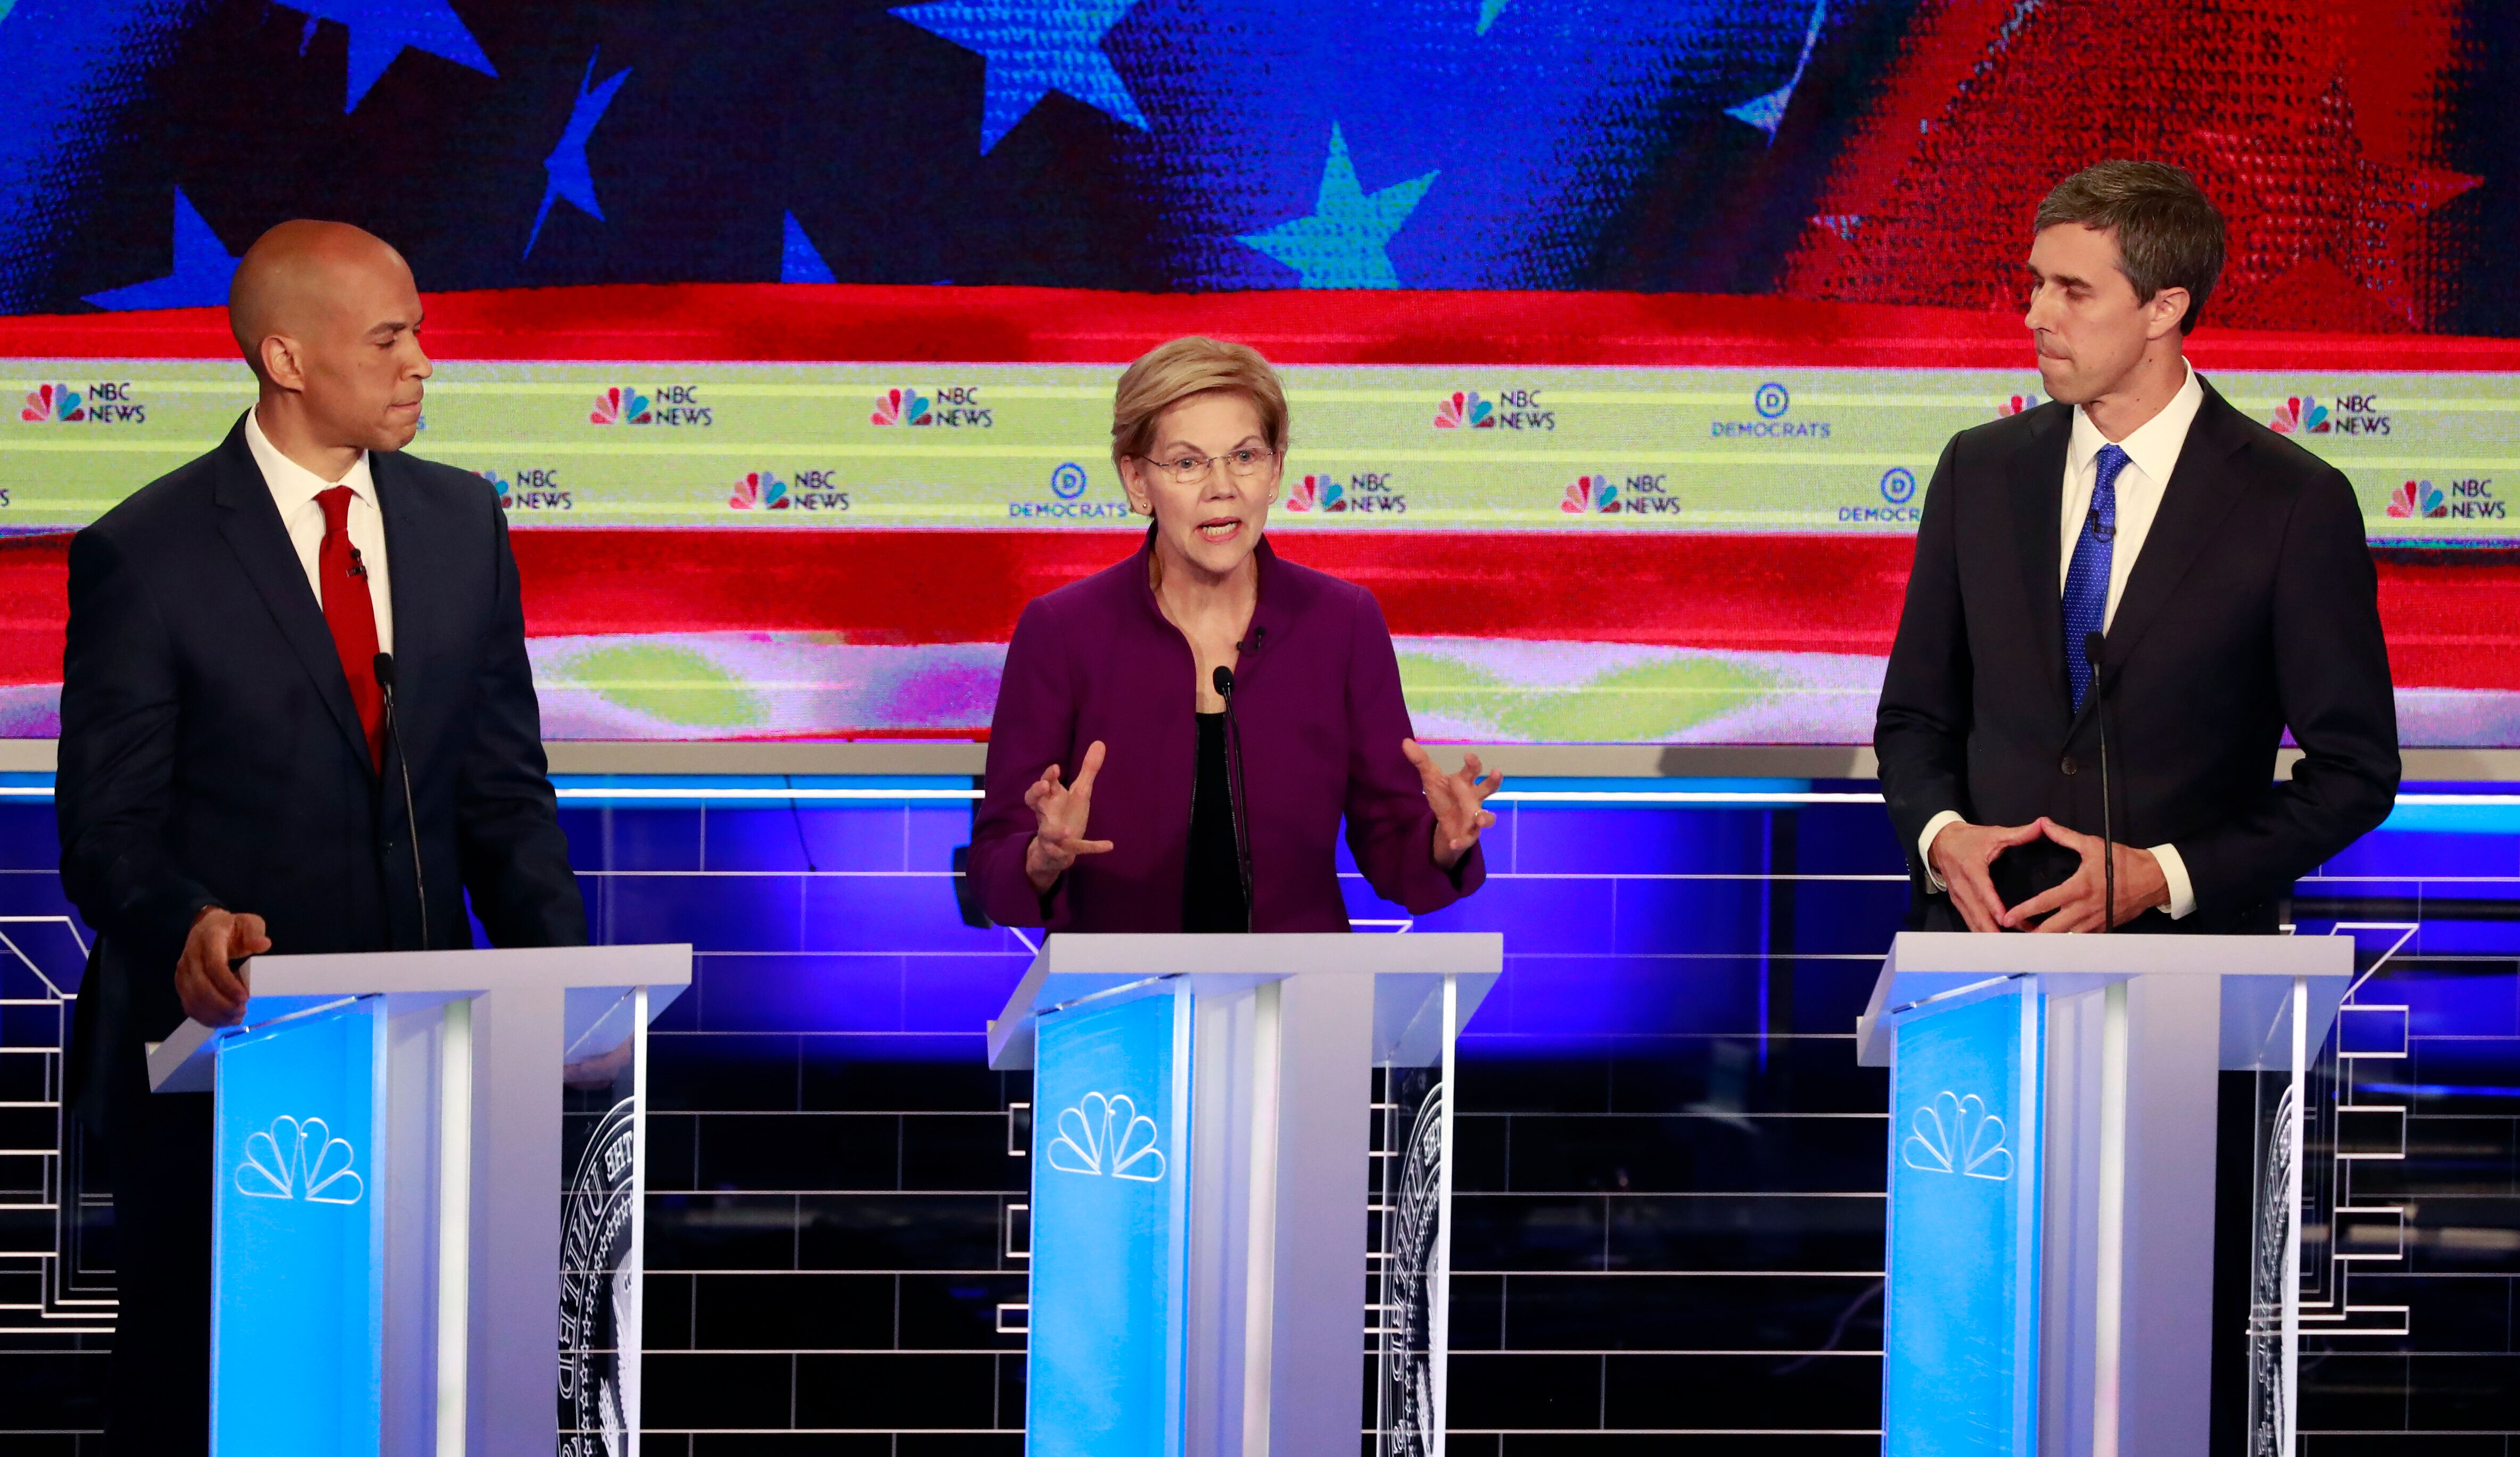 Cory Booker, Elizabeth Warren and Beto O'Rourke on June 26, the first night of the first Democratic presidential debate.